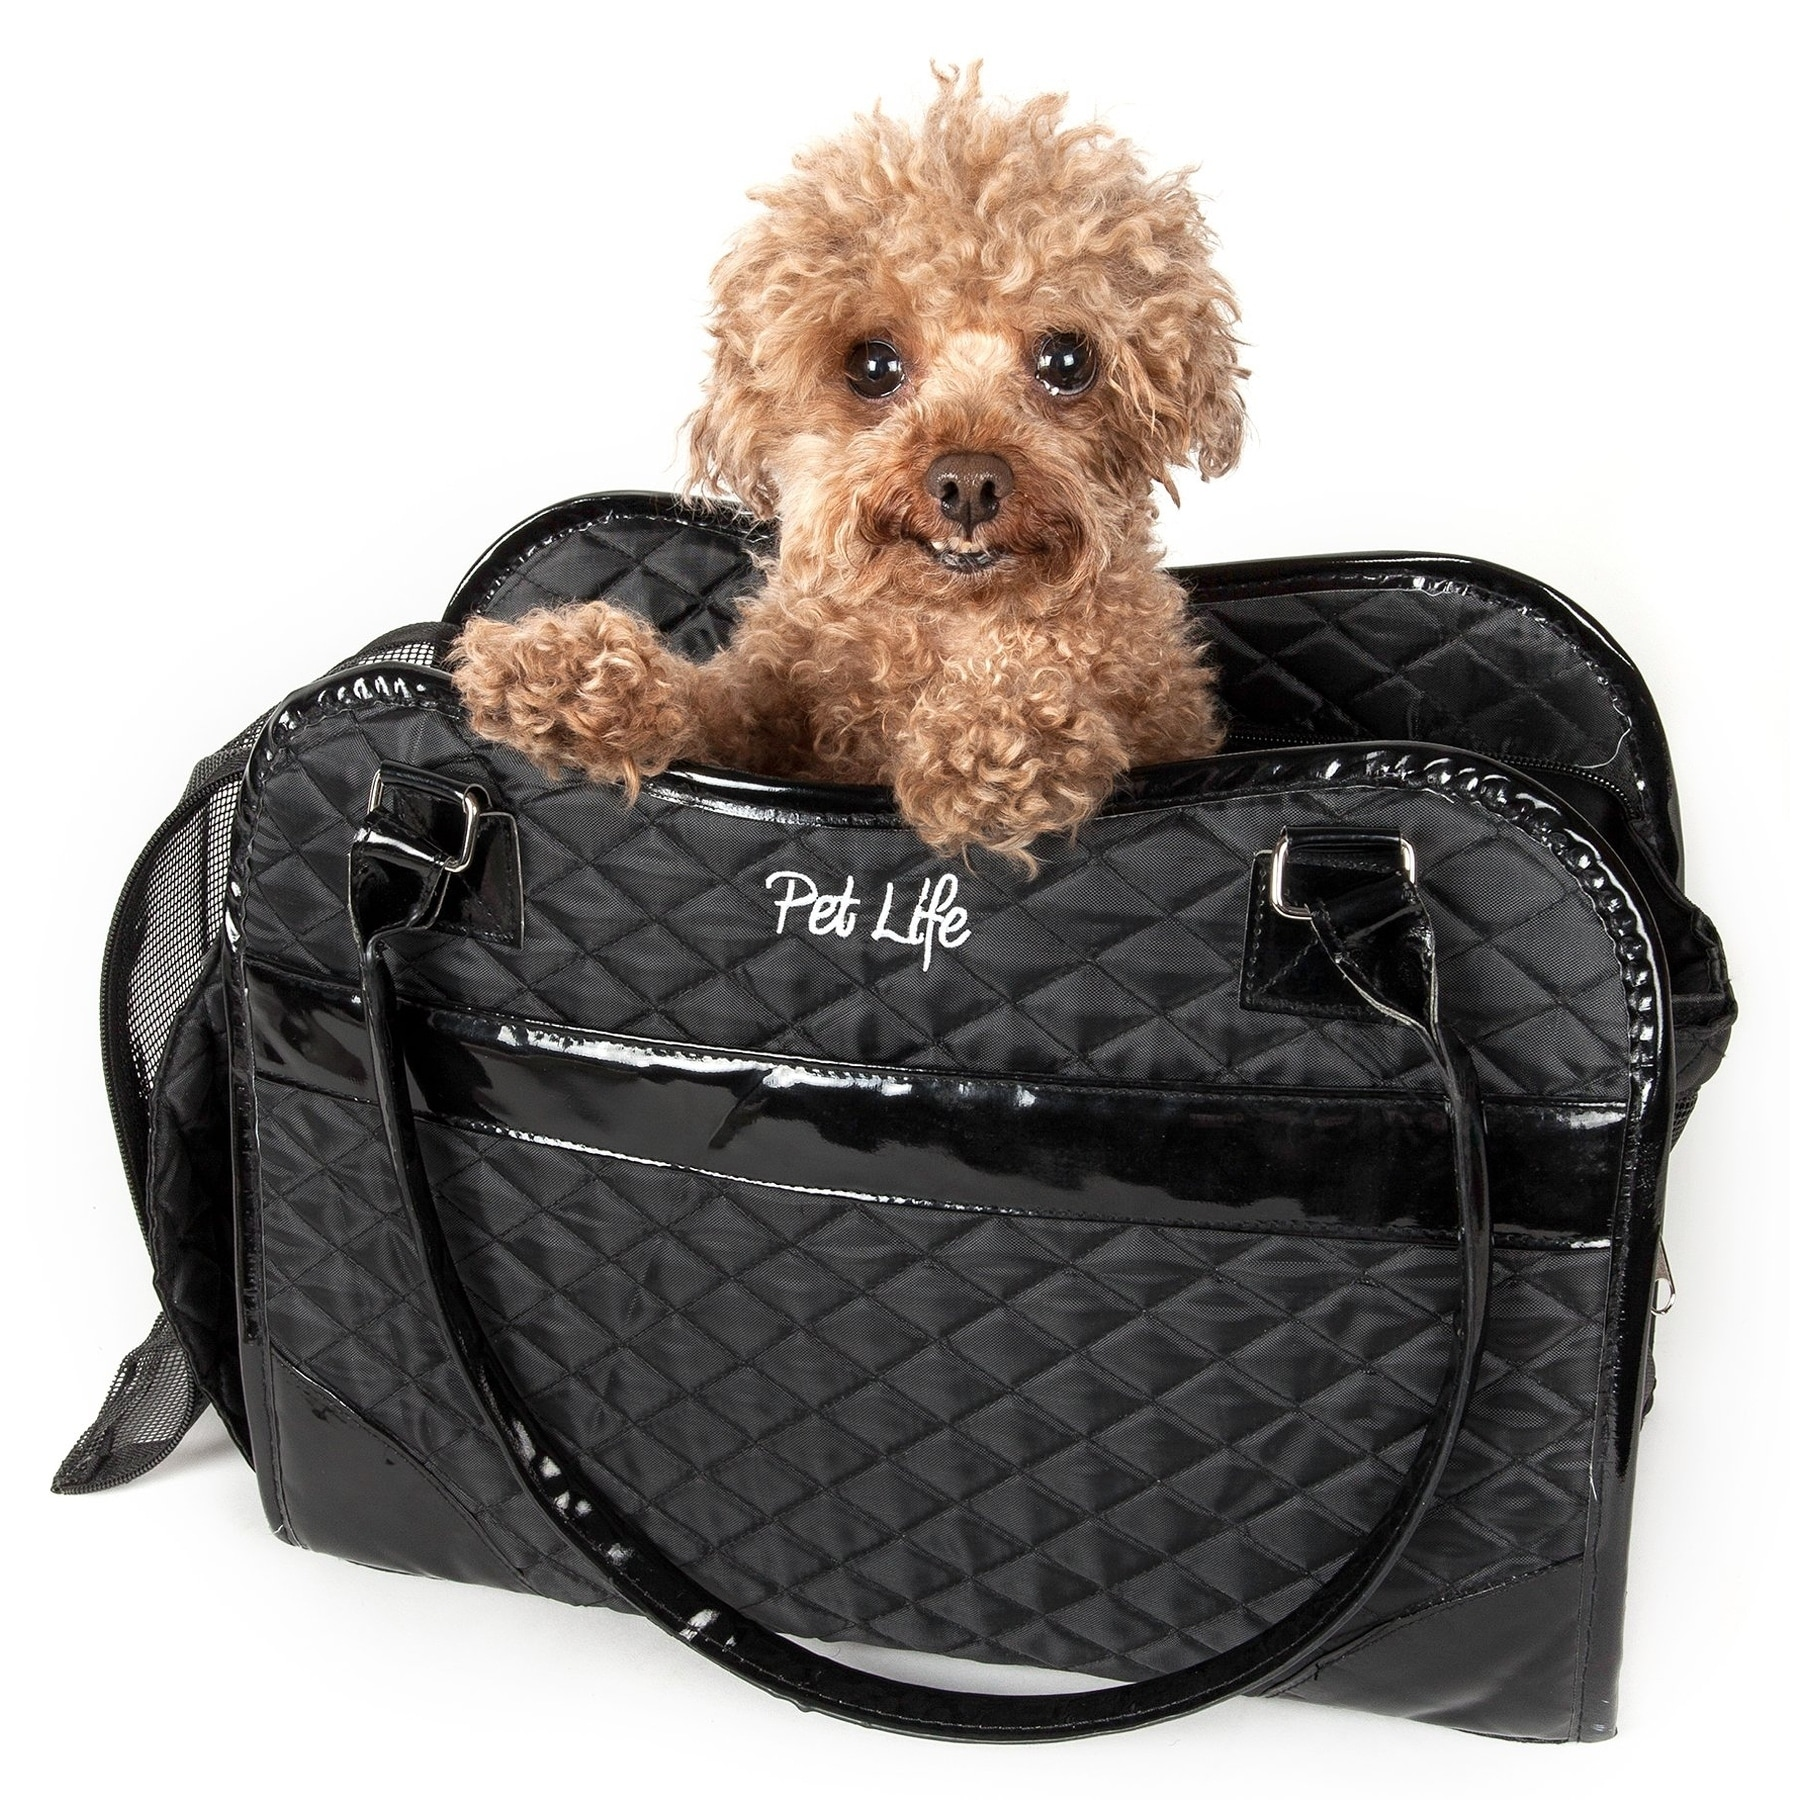 Petlife Black Exquisite Handbag Fashion Pet Carrier (Exqu...